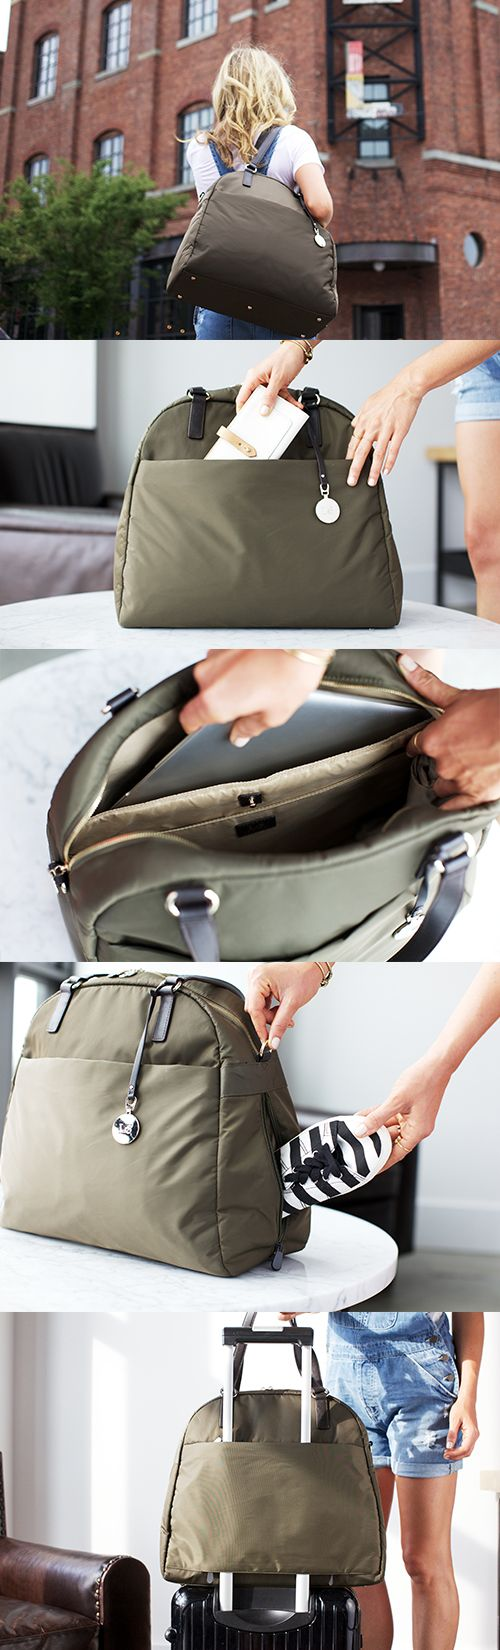 shop designer shoes for less   34 The OG  34    lightweight travel bag  tech friendly laptop tote  and stylish gym bag  Designed by Lo  amp  Sons   loandsons com   loandsons